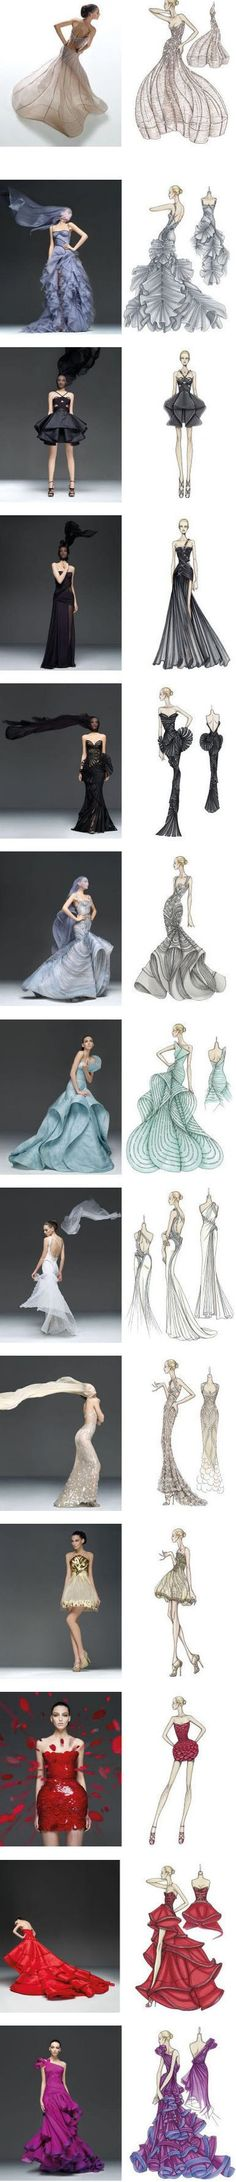 Oh my goodness! The detail and texture of these designs are stunning. I just want to be the model. However, for some of the shorter ones it doesn't quite work.